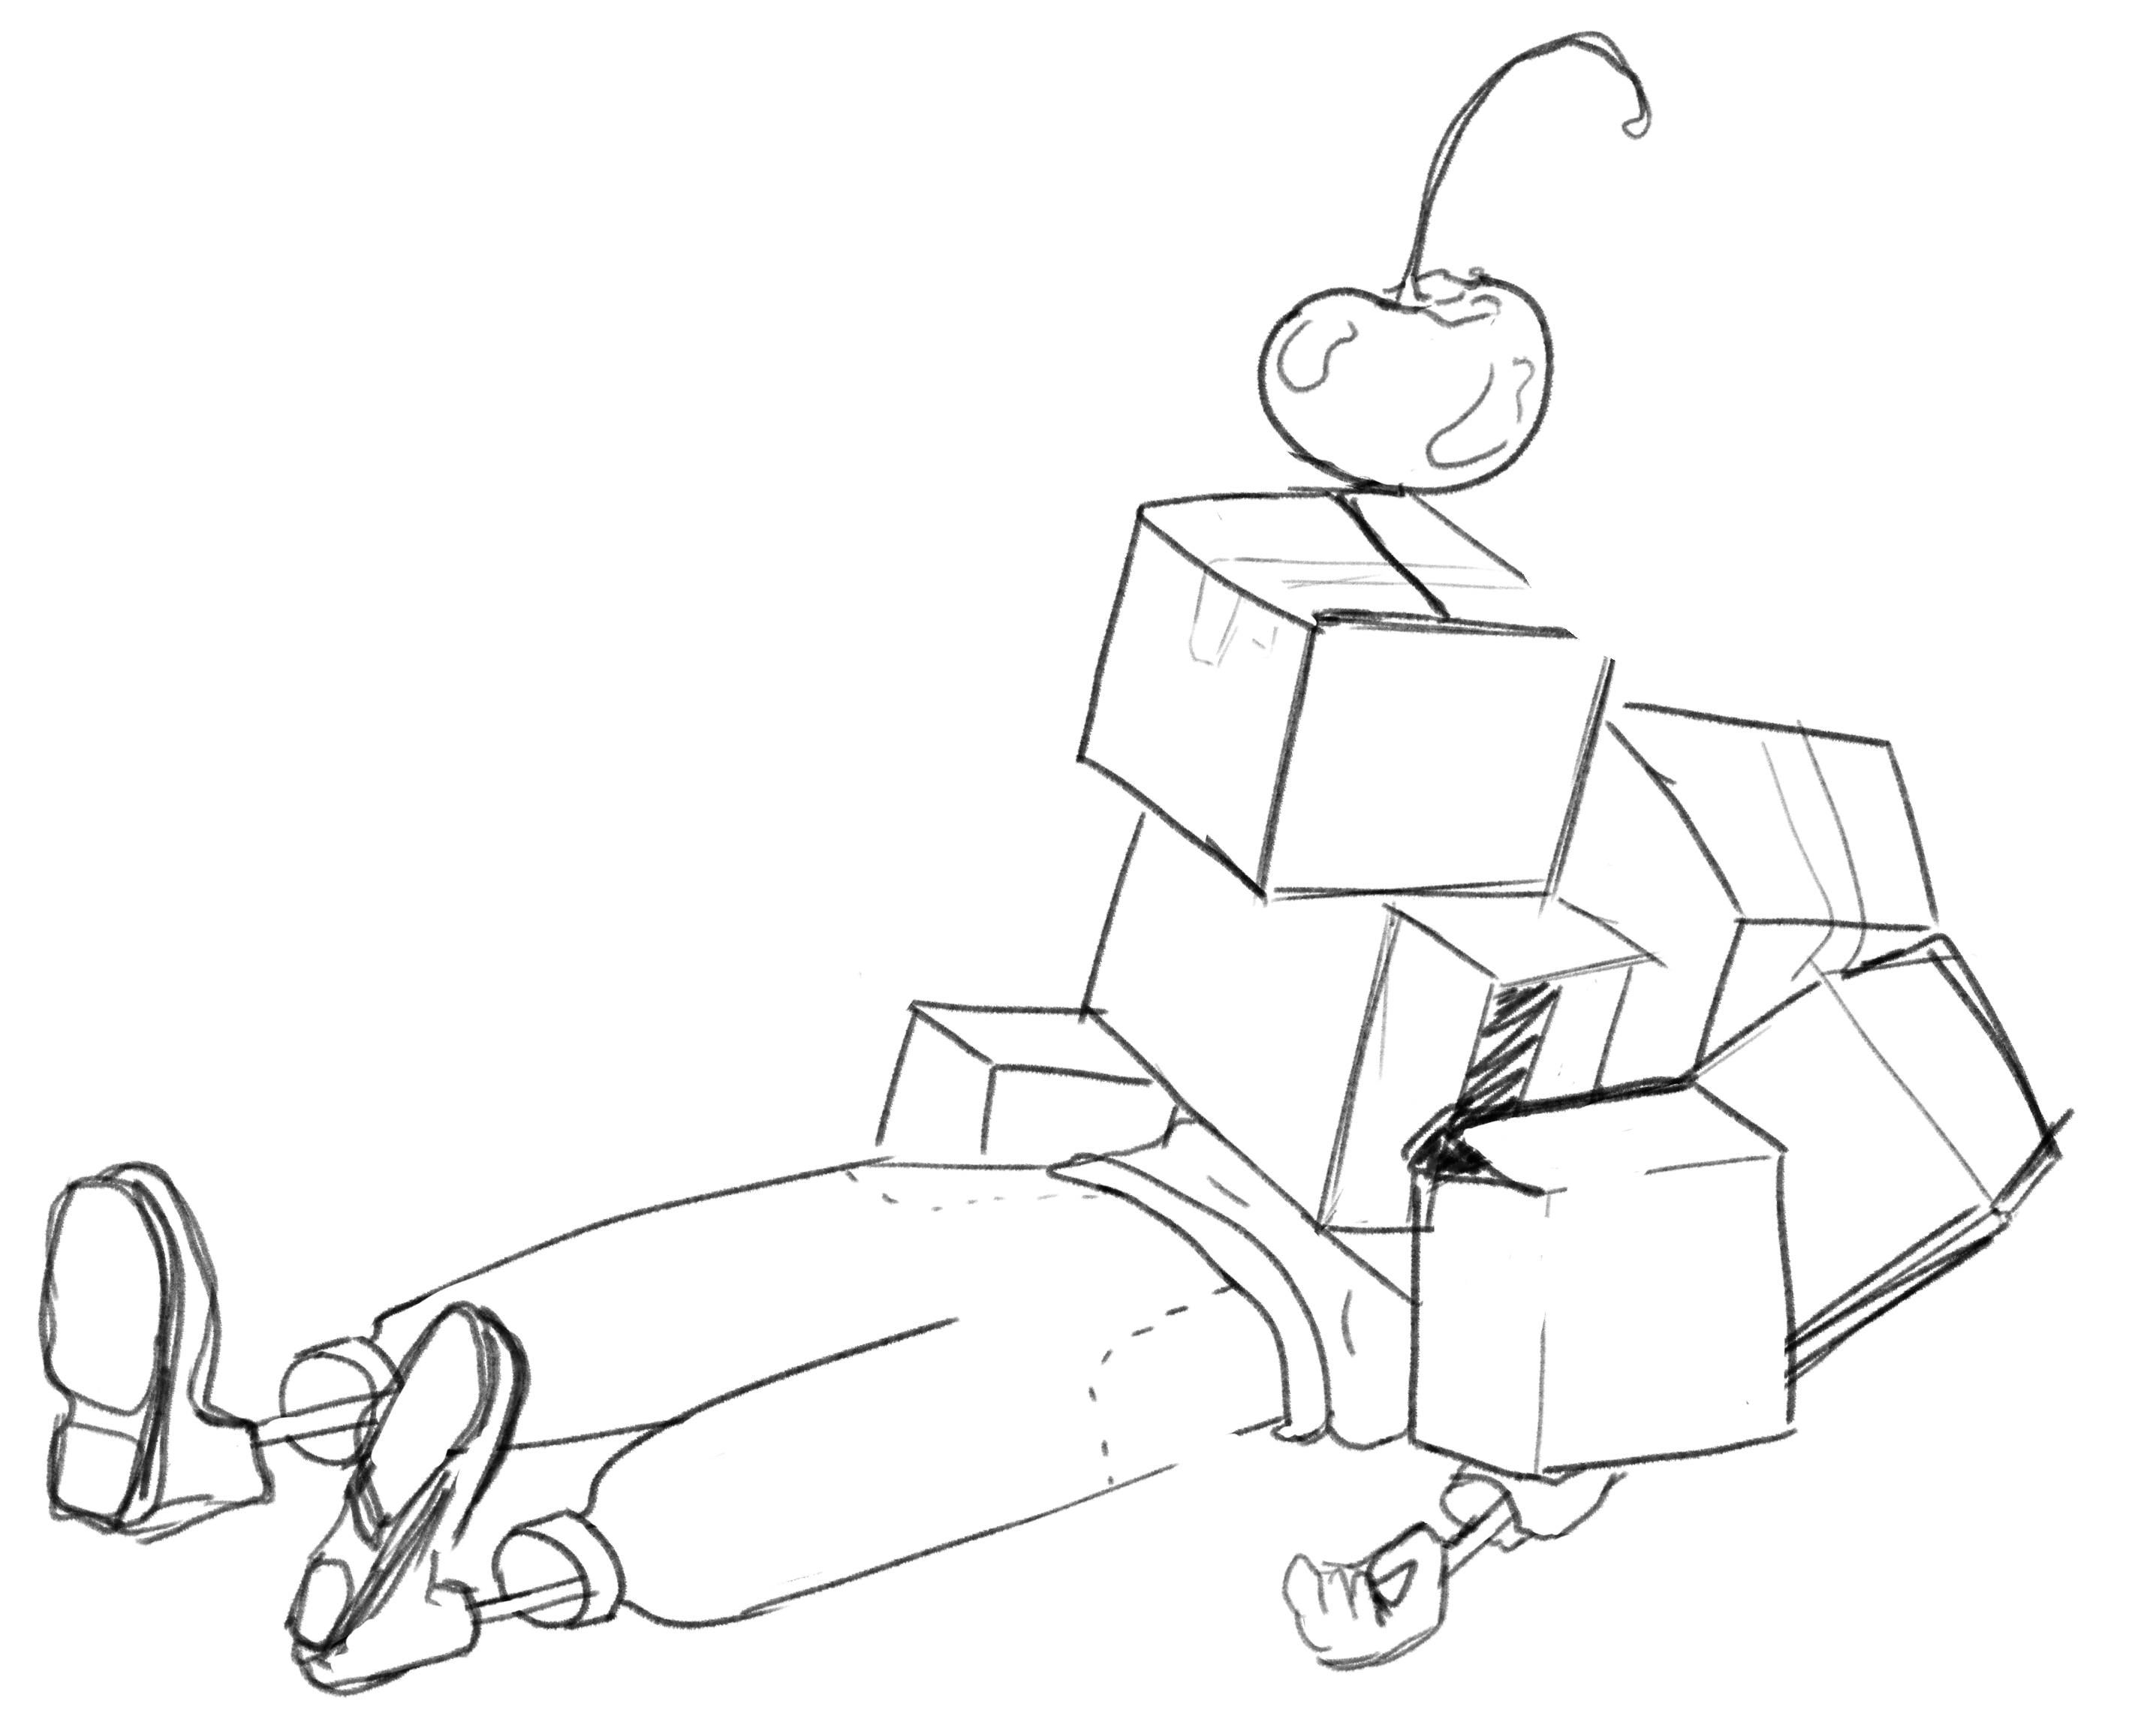 a drawing of boxes piled on top of a person lying down with a cherry on top